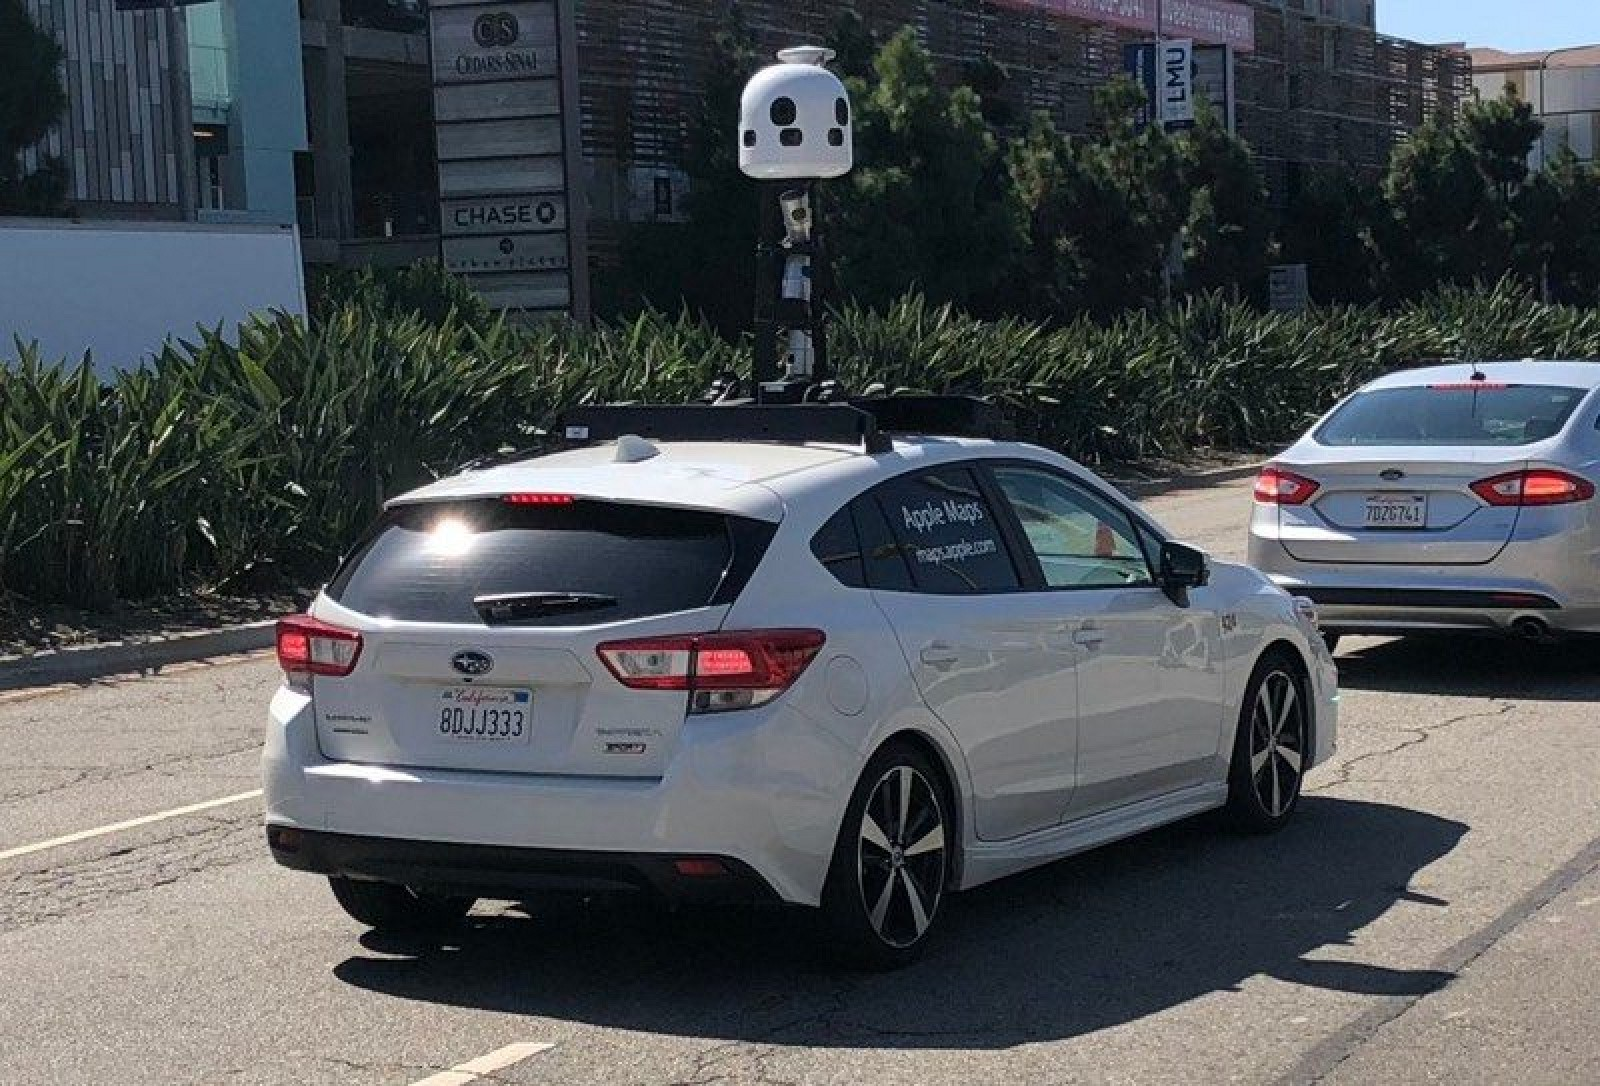 photo image New Apple Maps Cars Spotted in Los Angeles